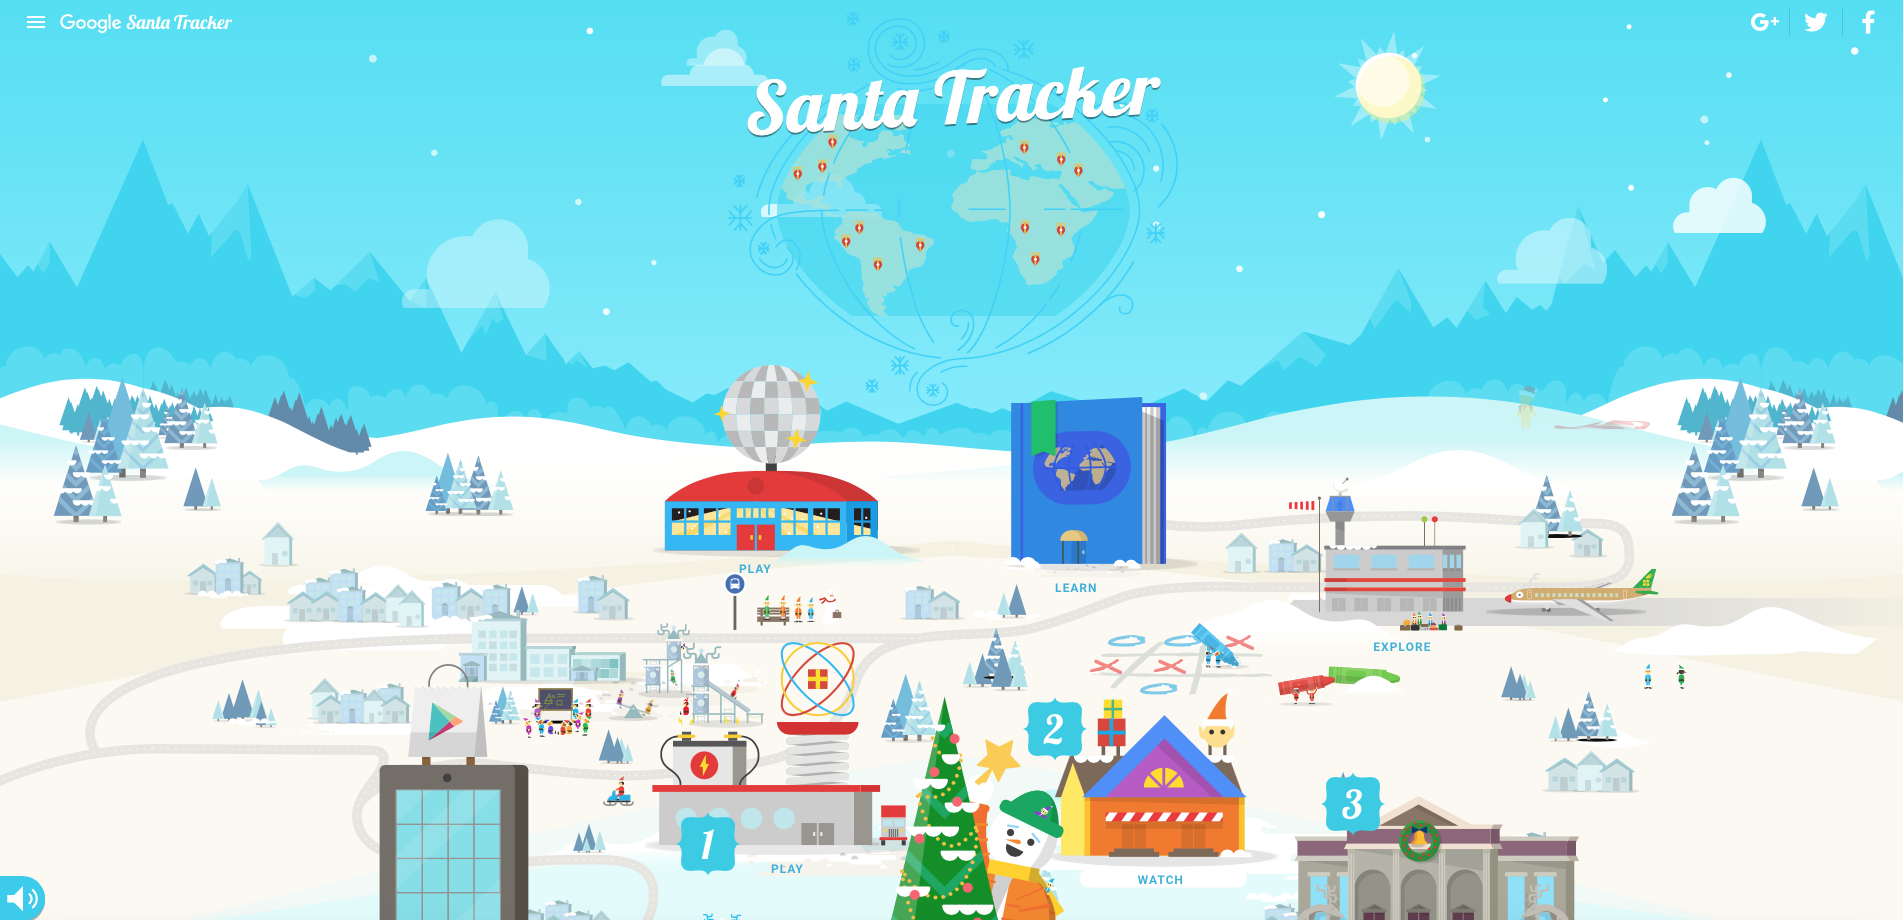 Enjoy Christmas with Santa Claus at the North Pole an awardwinning Christmas website Send a letter to Santa Claus or a Christmas card to a friend Find yummy